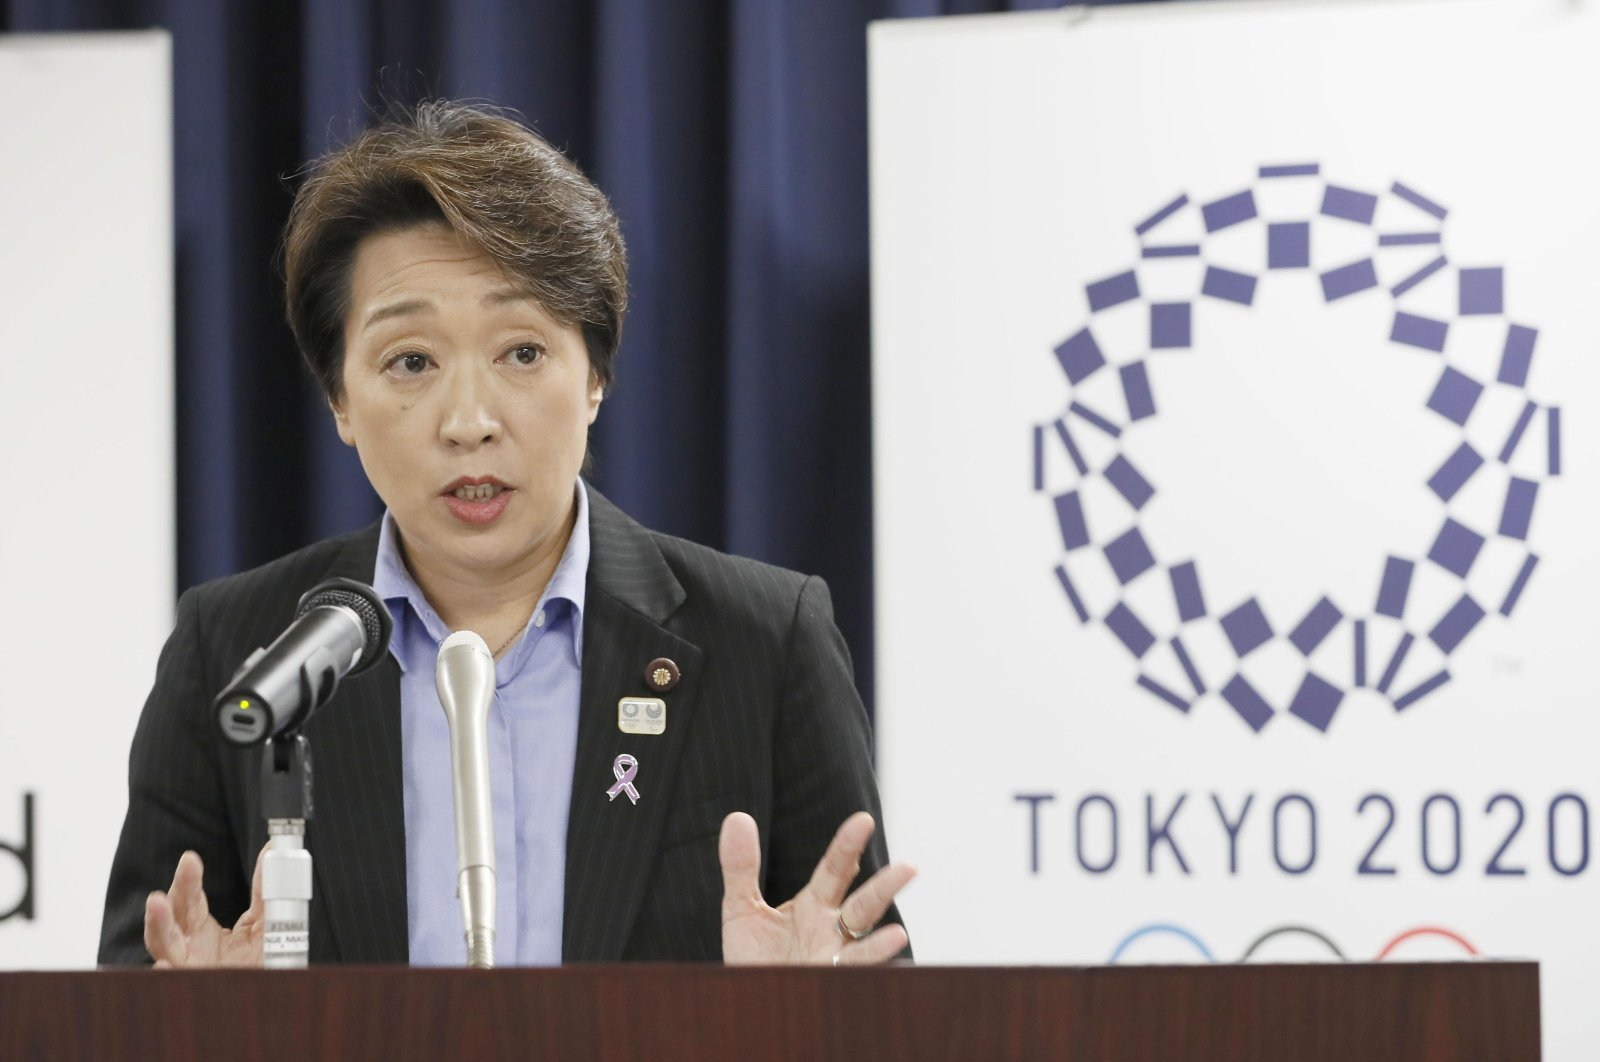 Japan's Olympics Minister Seiko Hashimoto speaks during a news conference at the Cabinet office in Tokyo, Japan, Sept. 19, 2019. (Kyodo News via AP)